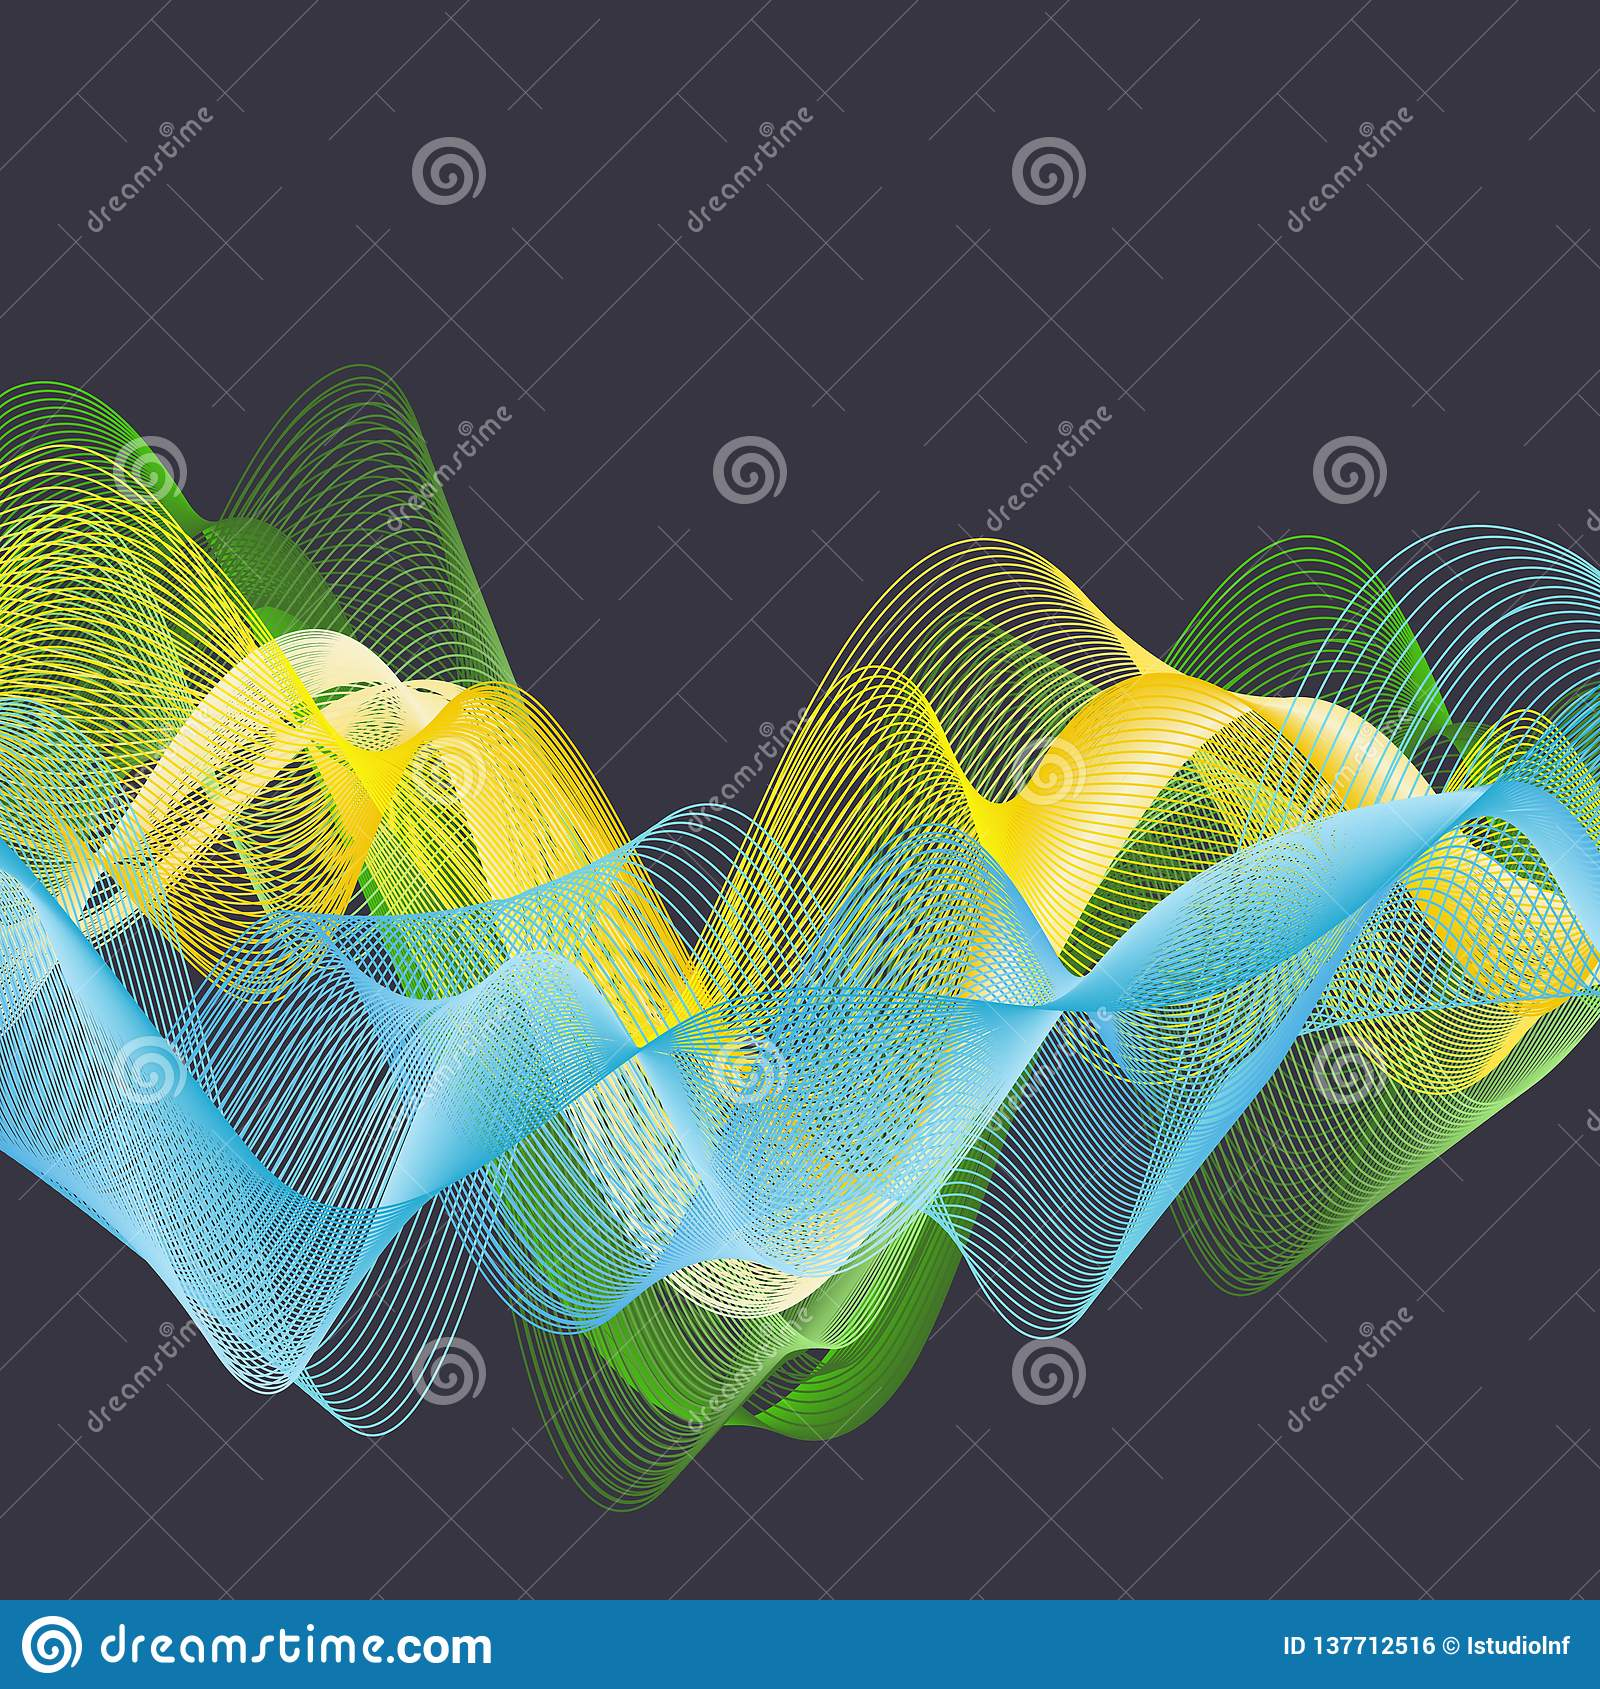 Dynamic waves illustration, abstract background